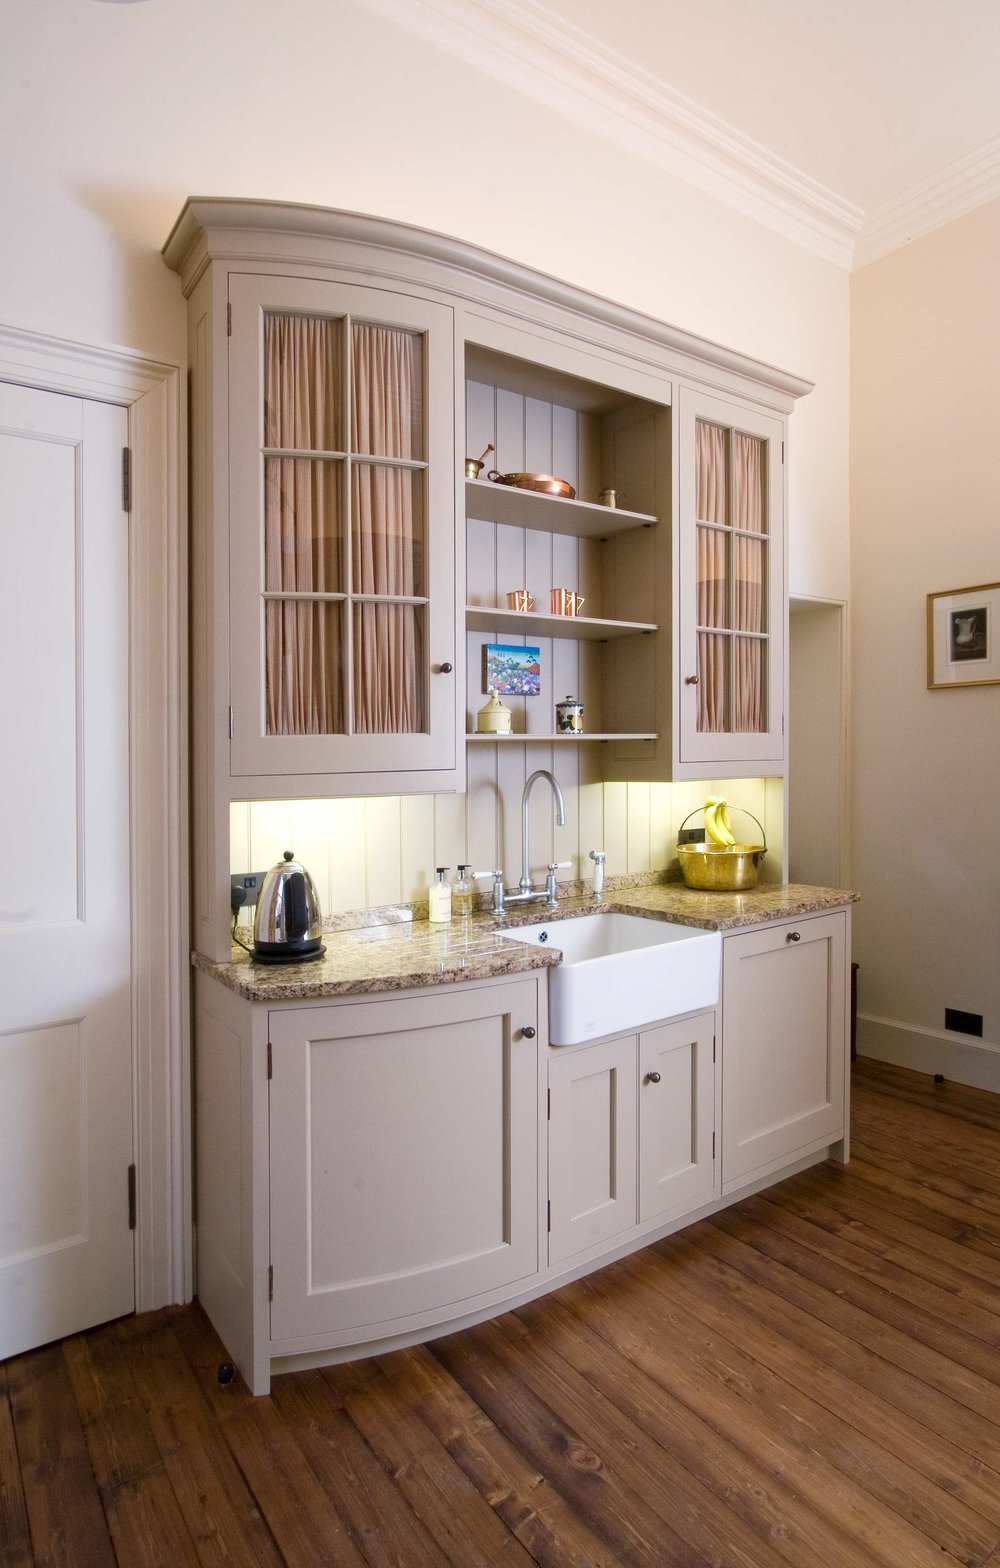 Painted kitchen with granite worktops and curved units, the Grange, Edinburgh.